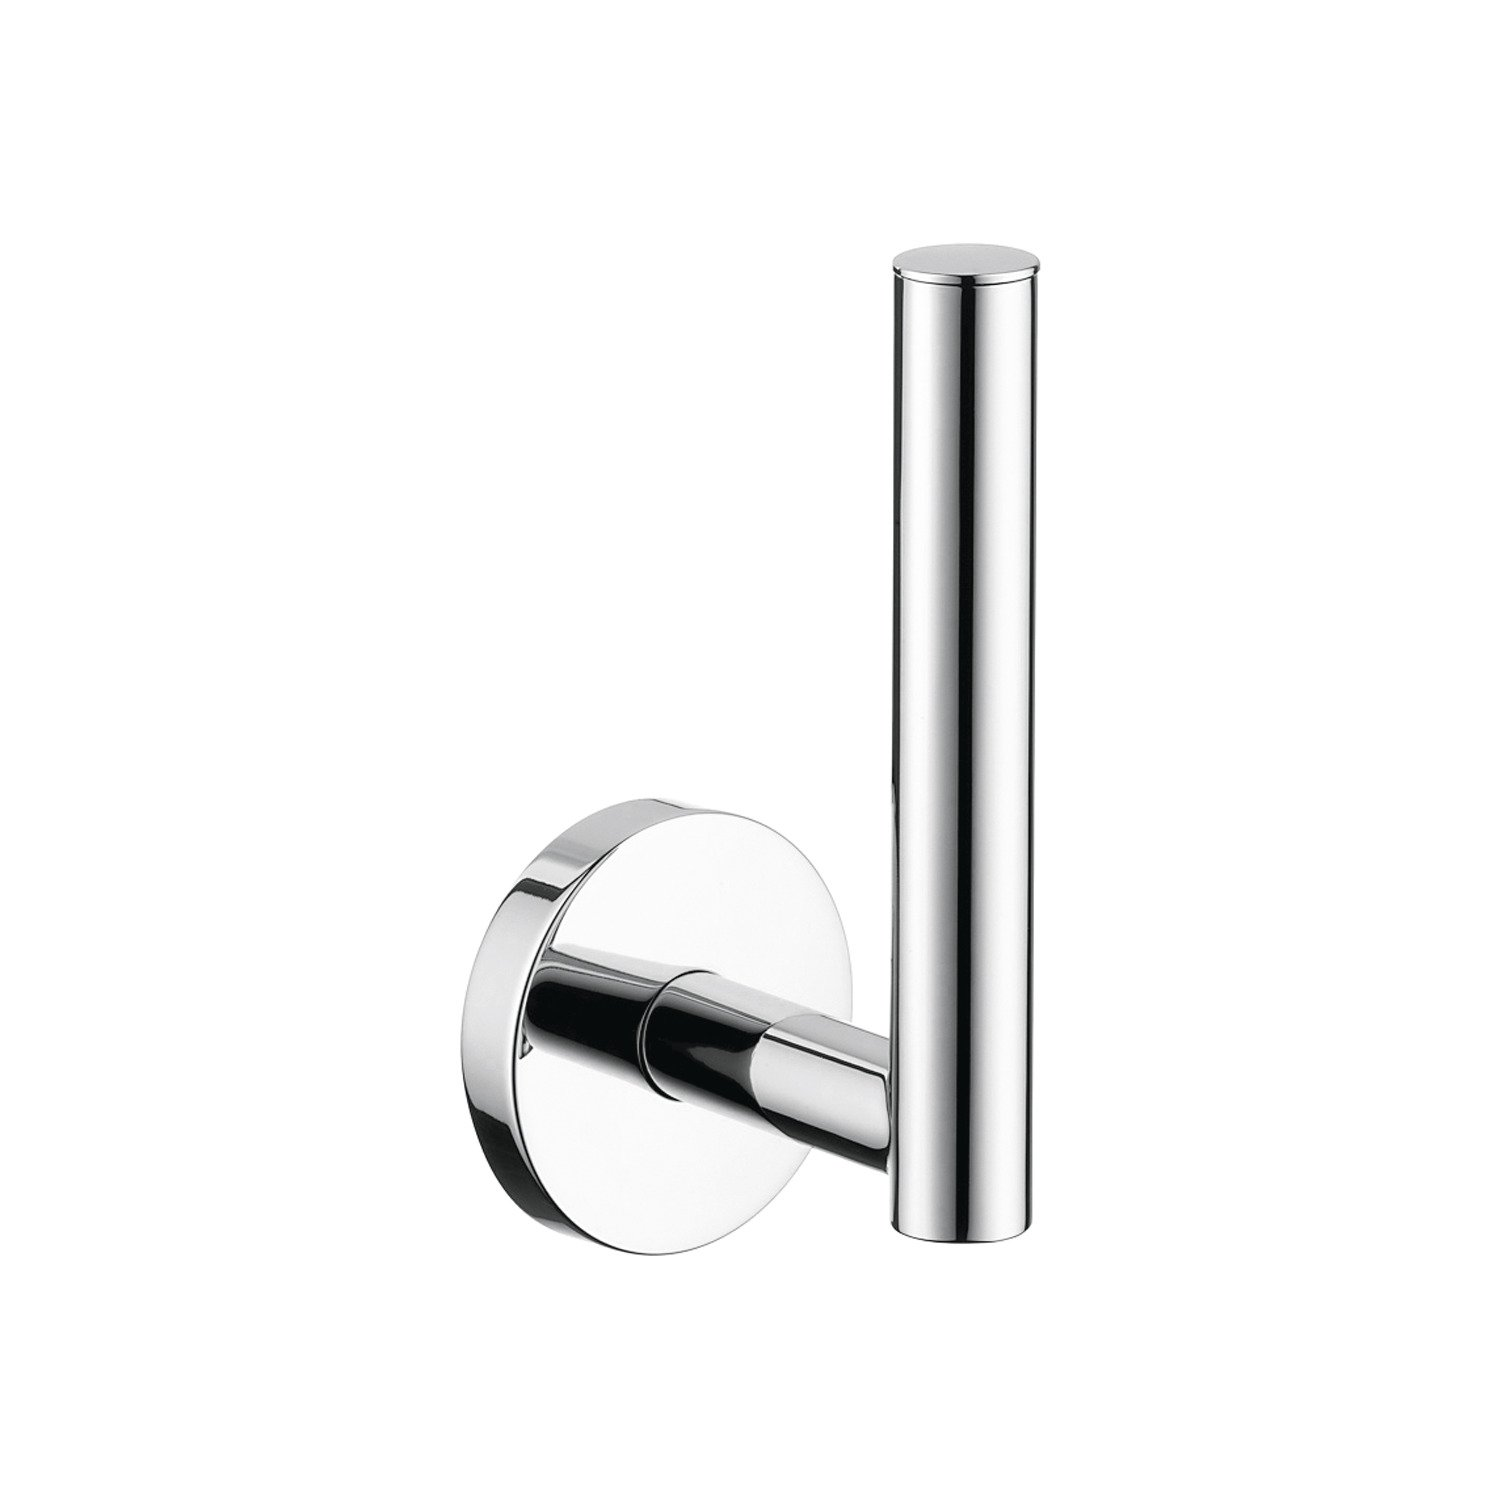 Hansgrohe 40517000 S and E Accessories Spare Toilet Paper Holder, Chrome